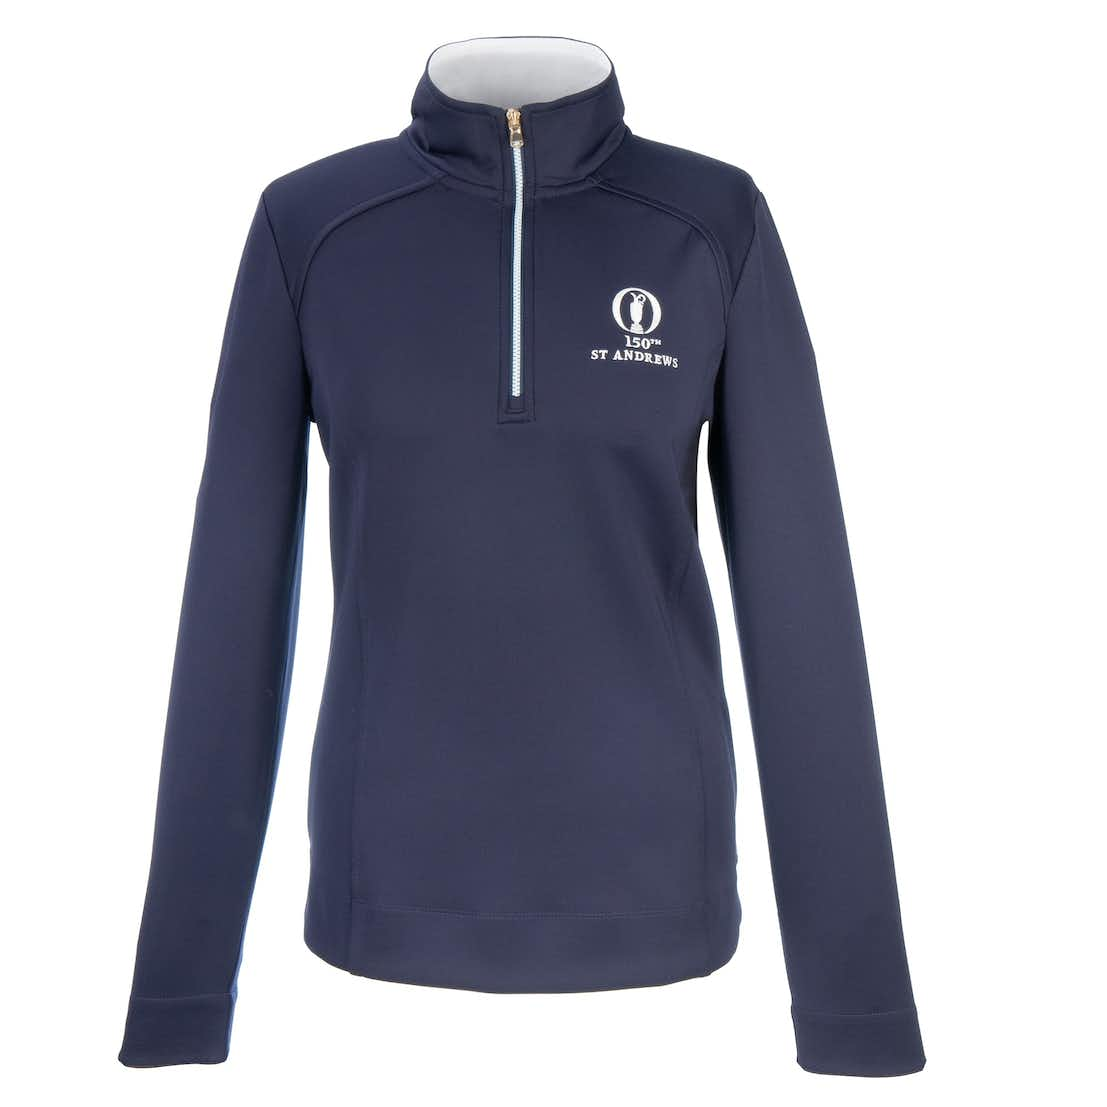 150th St Andrews Fairway & Greene 1/4-Zip Sweater - Blue